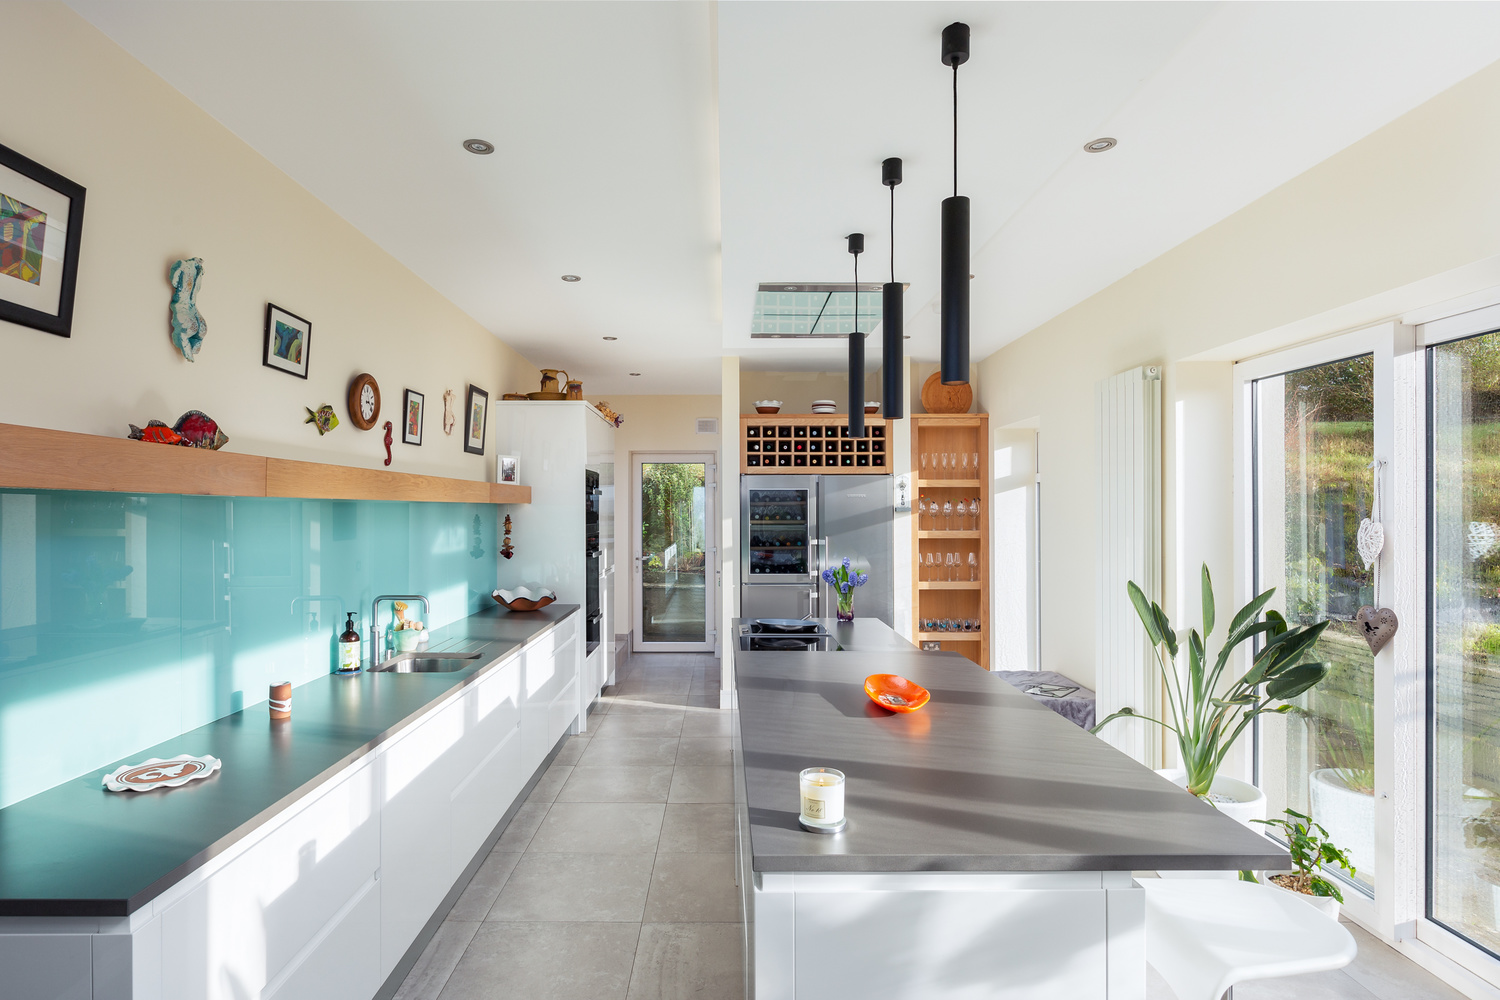 professional photography of a contemporary kitch